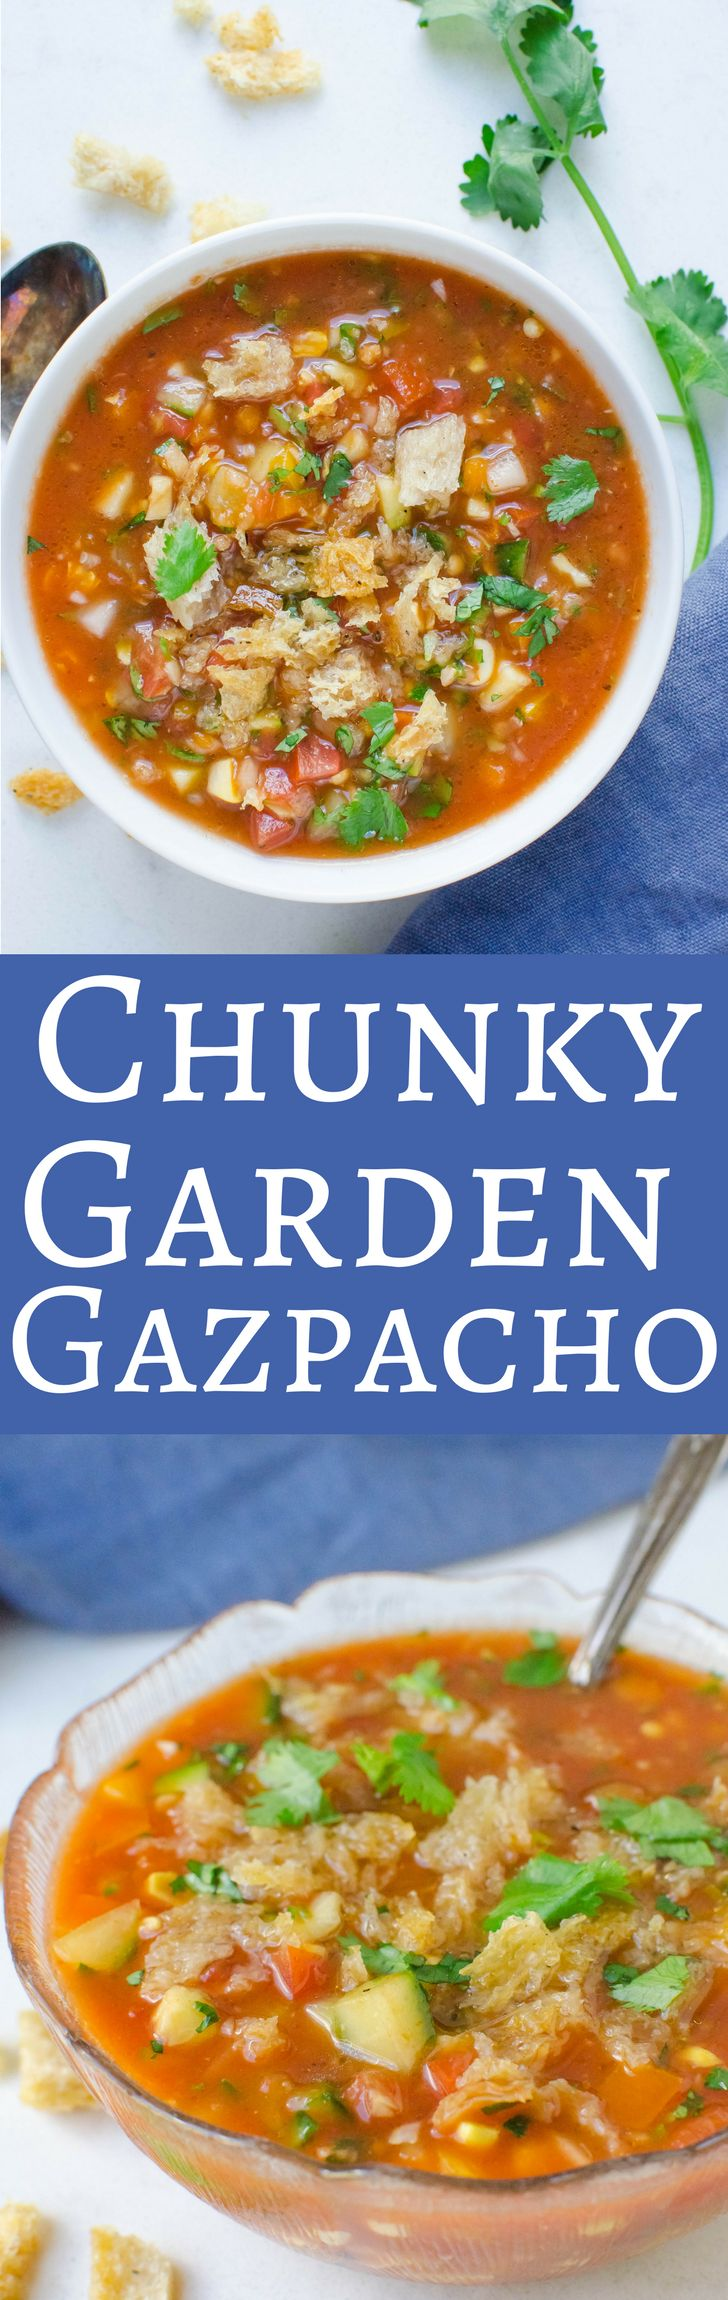 Loaded with veggies, this easy gazpacho recipe is cool and refreshing!  Perfect for summer! via @GarlicandZest